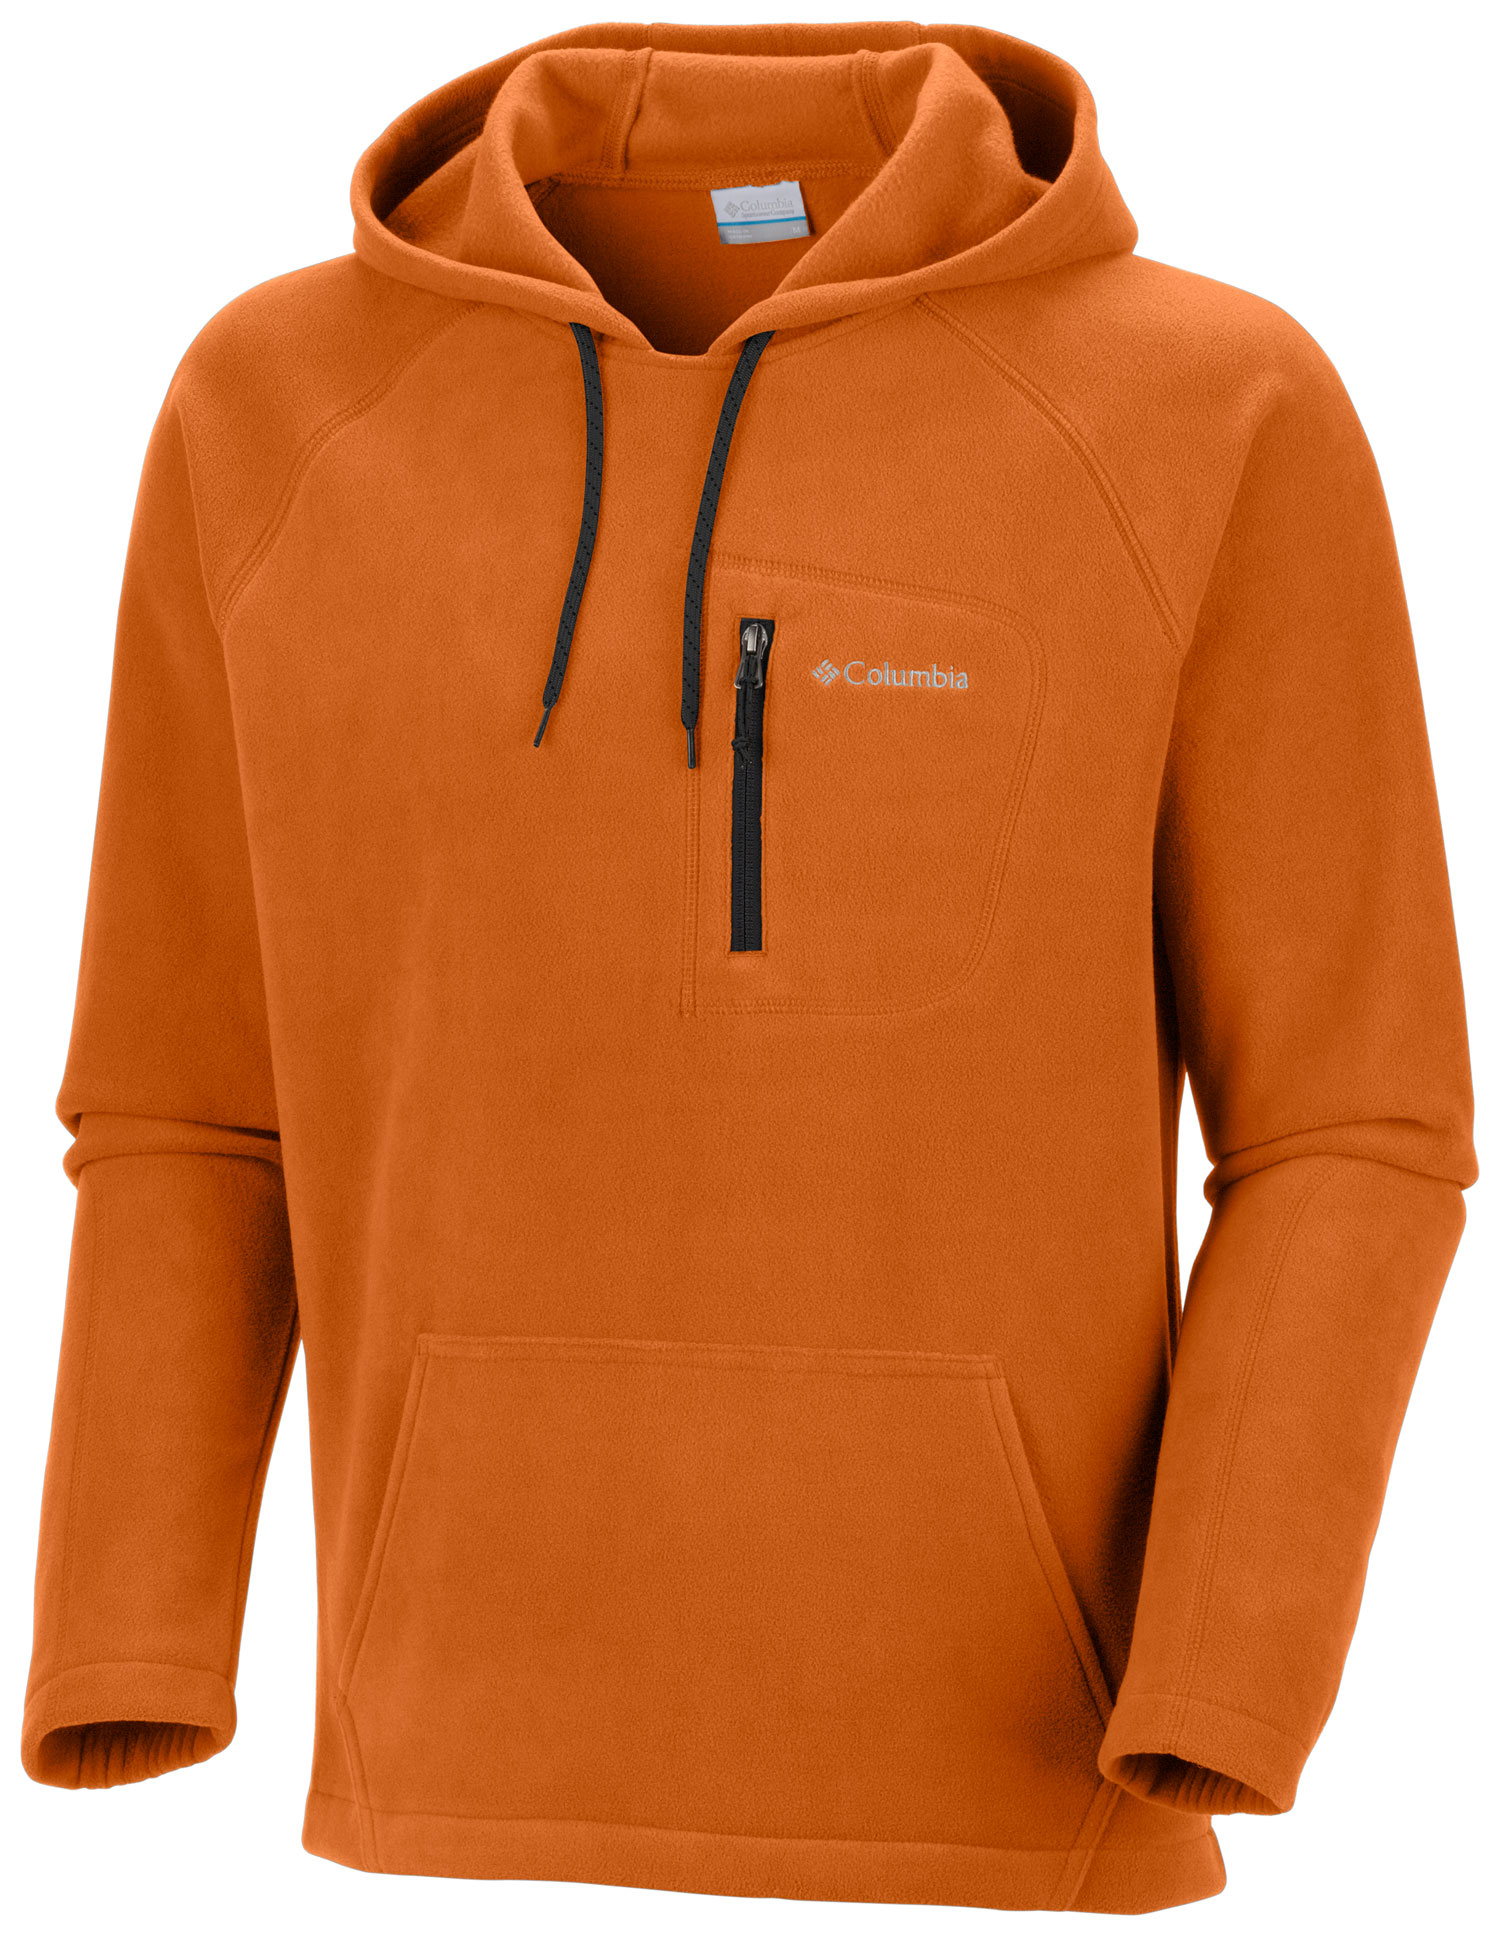 Key Features of the Columbia Fast Trek Hoodies: FABRIC 100% polyester micro?eece 250g. FIT Modern Classic Zip-closed security pocket - $31.95